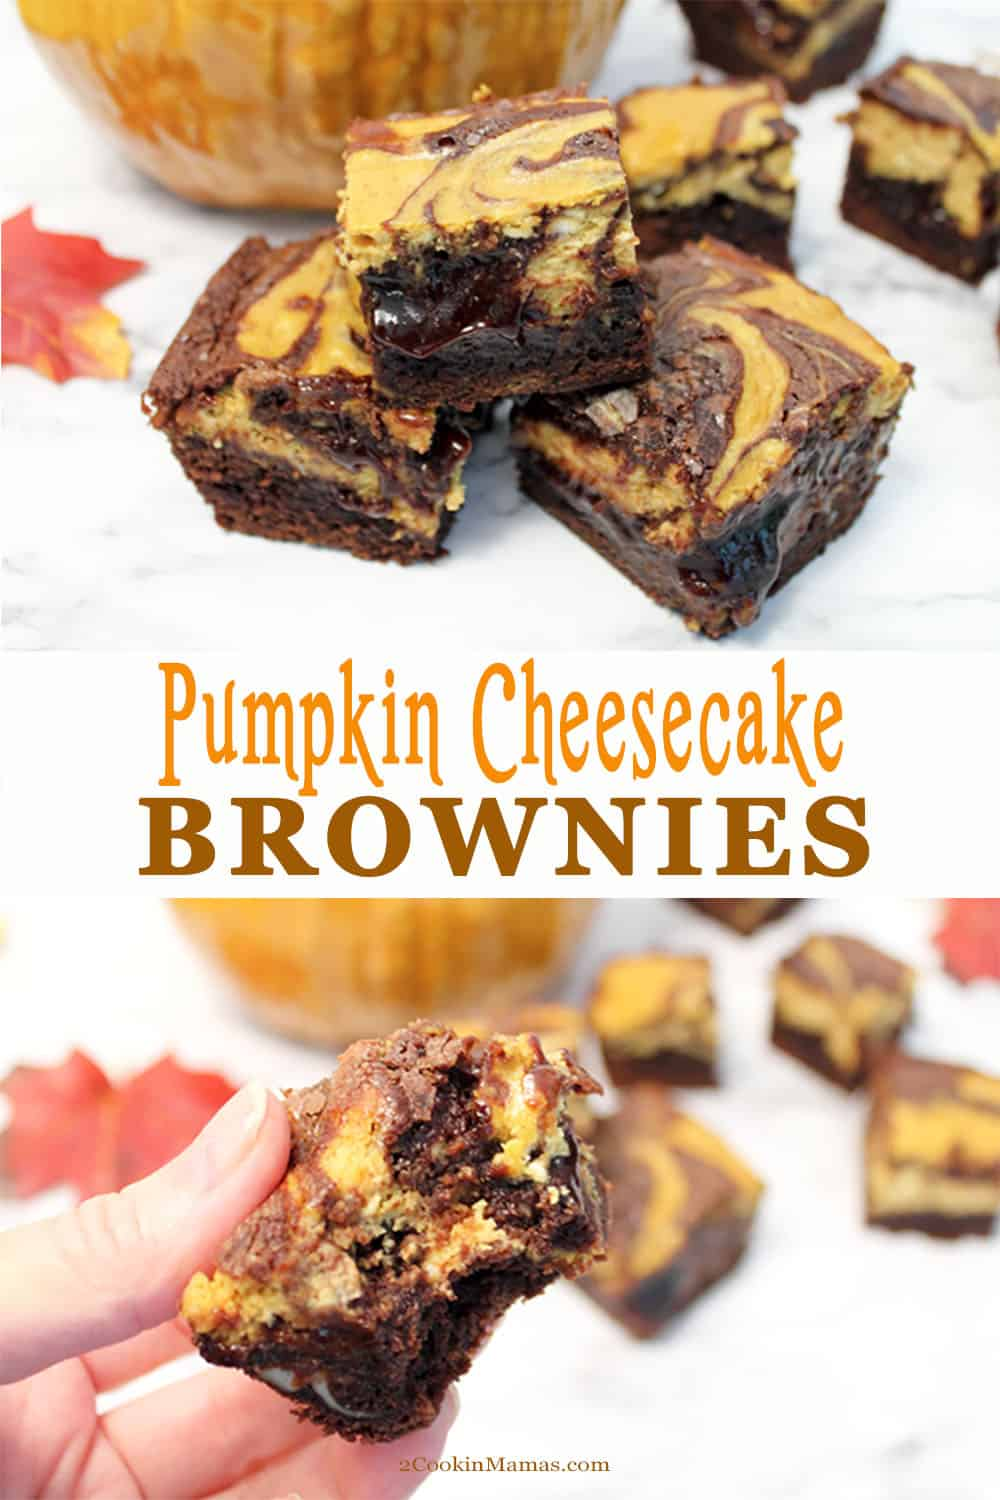 Pumpkin Cheesecake Brownies Perfect for Fall